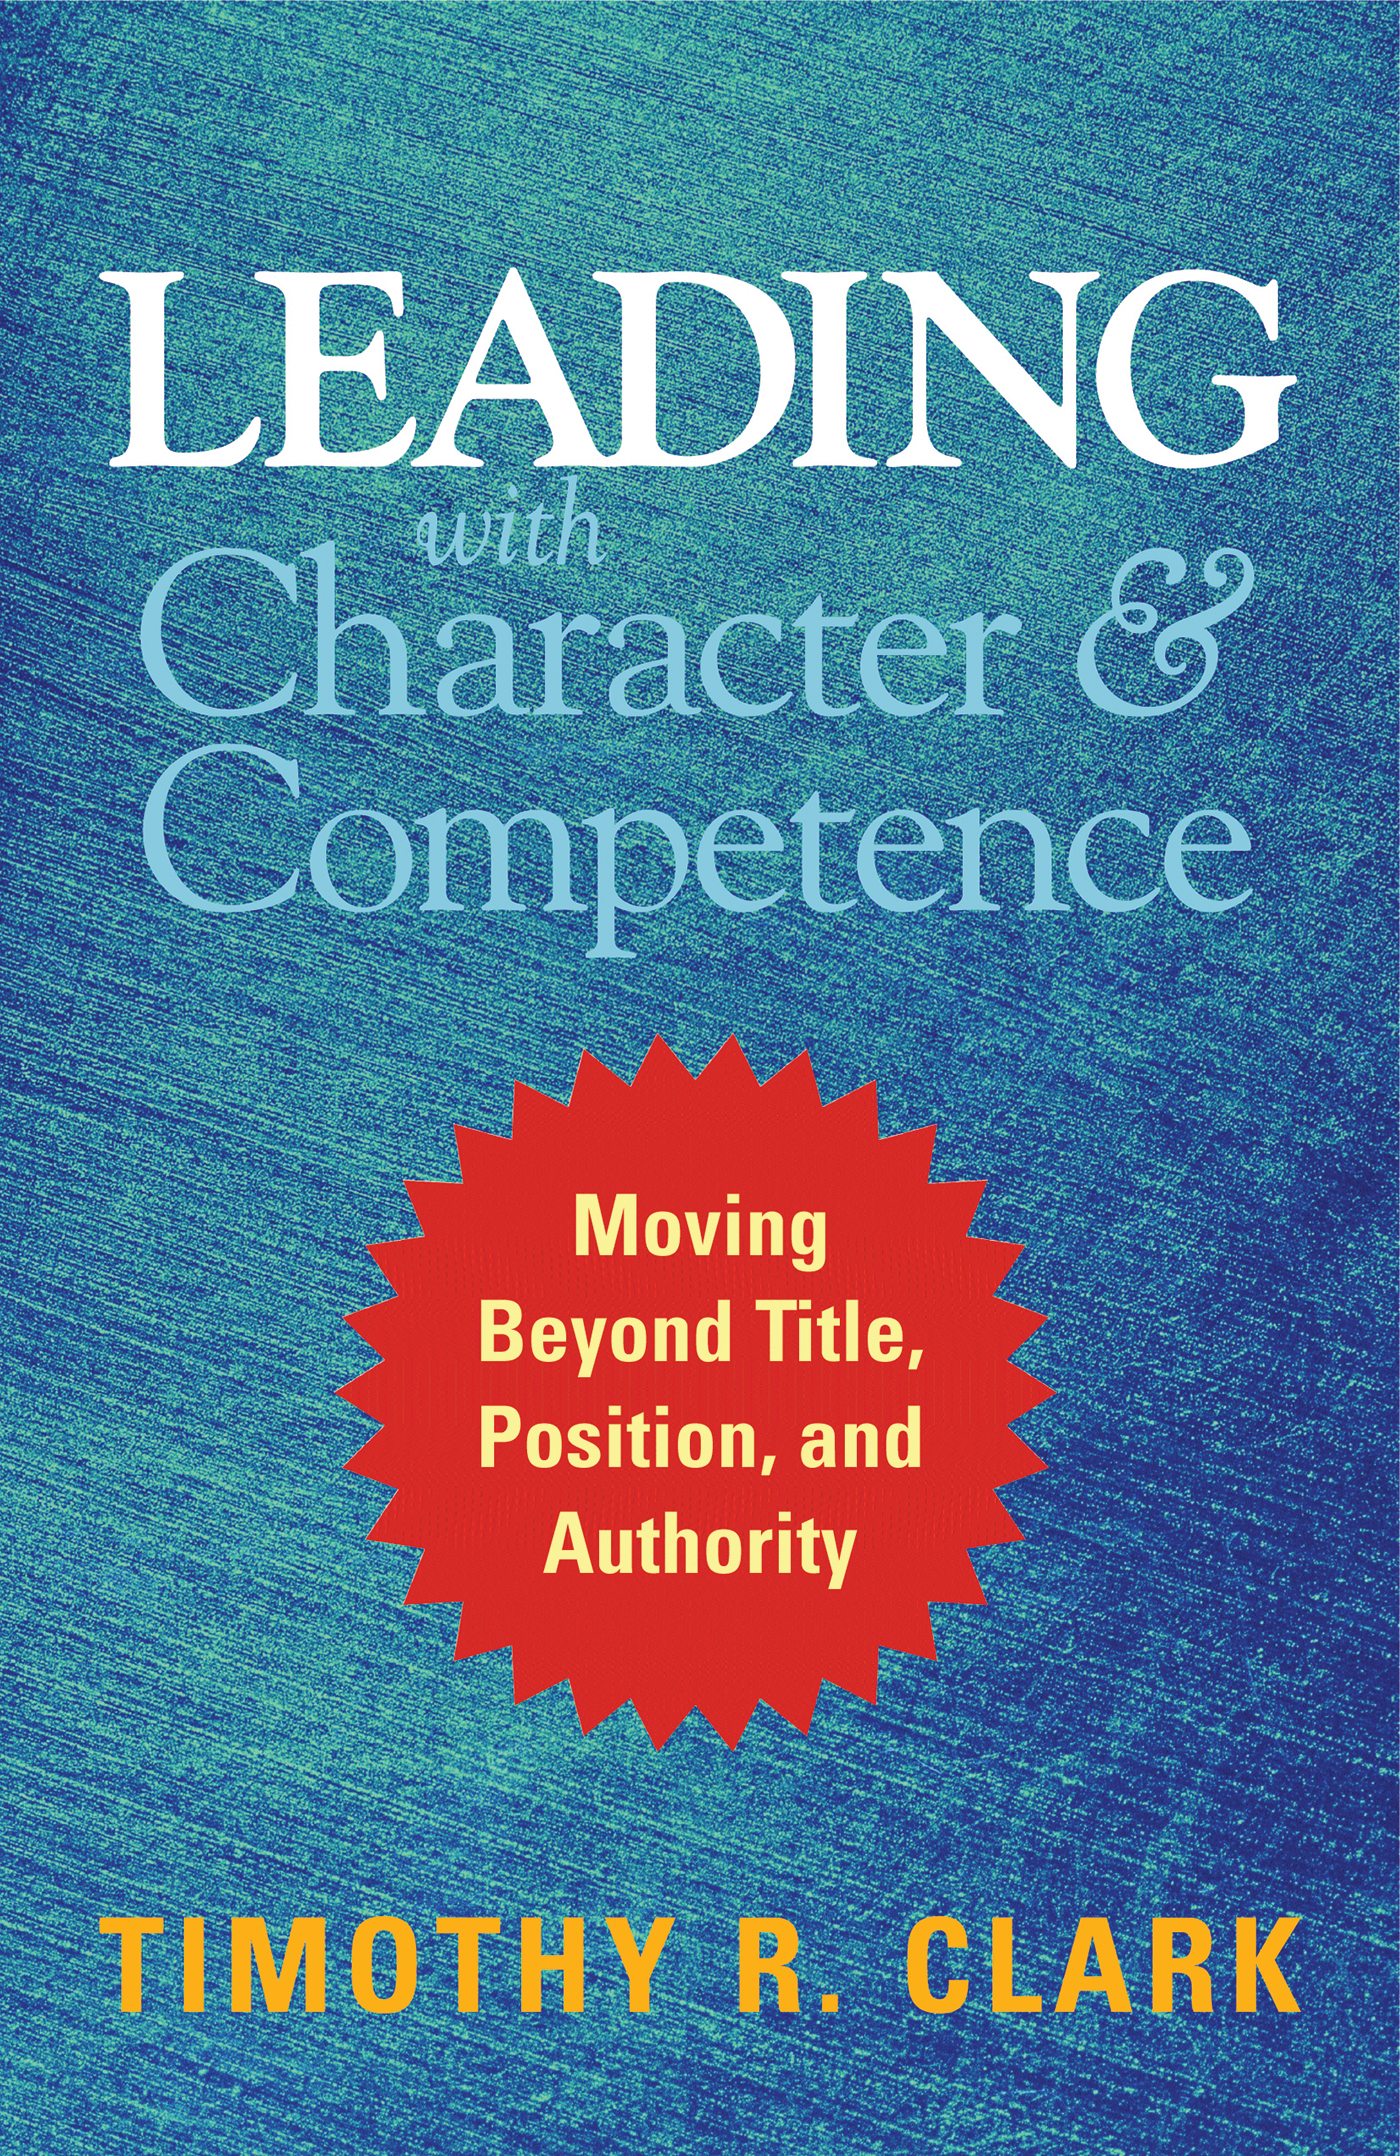 Download Ebook Leading with Character and Competence by Timothy R. Clark Pdf